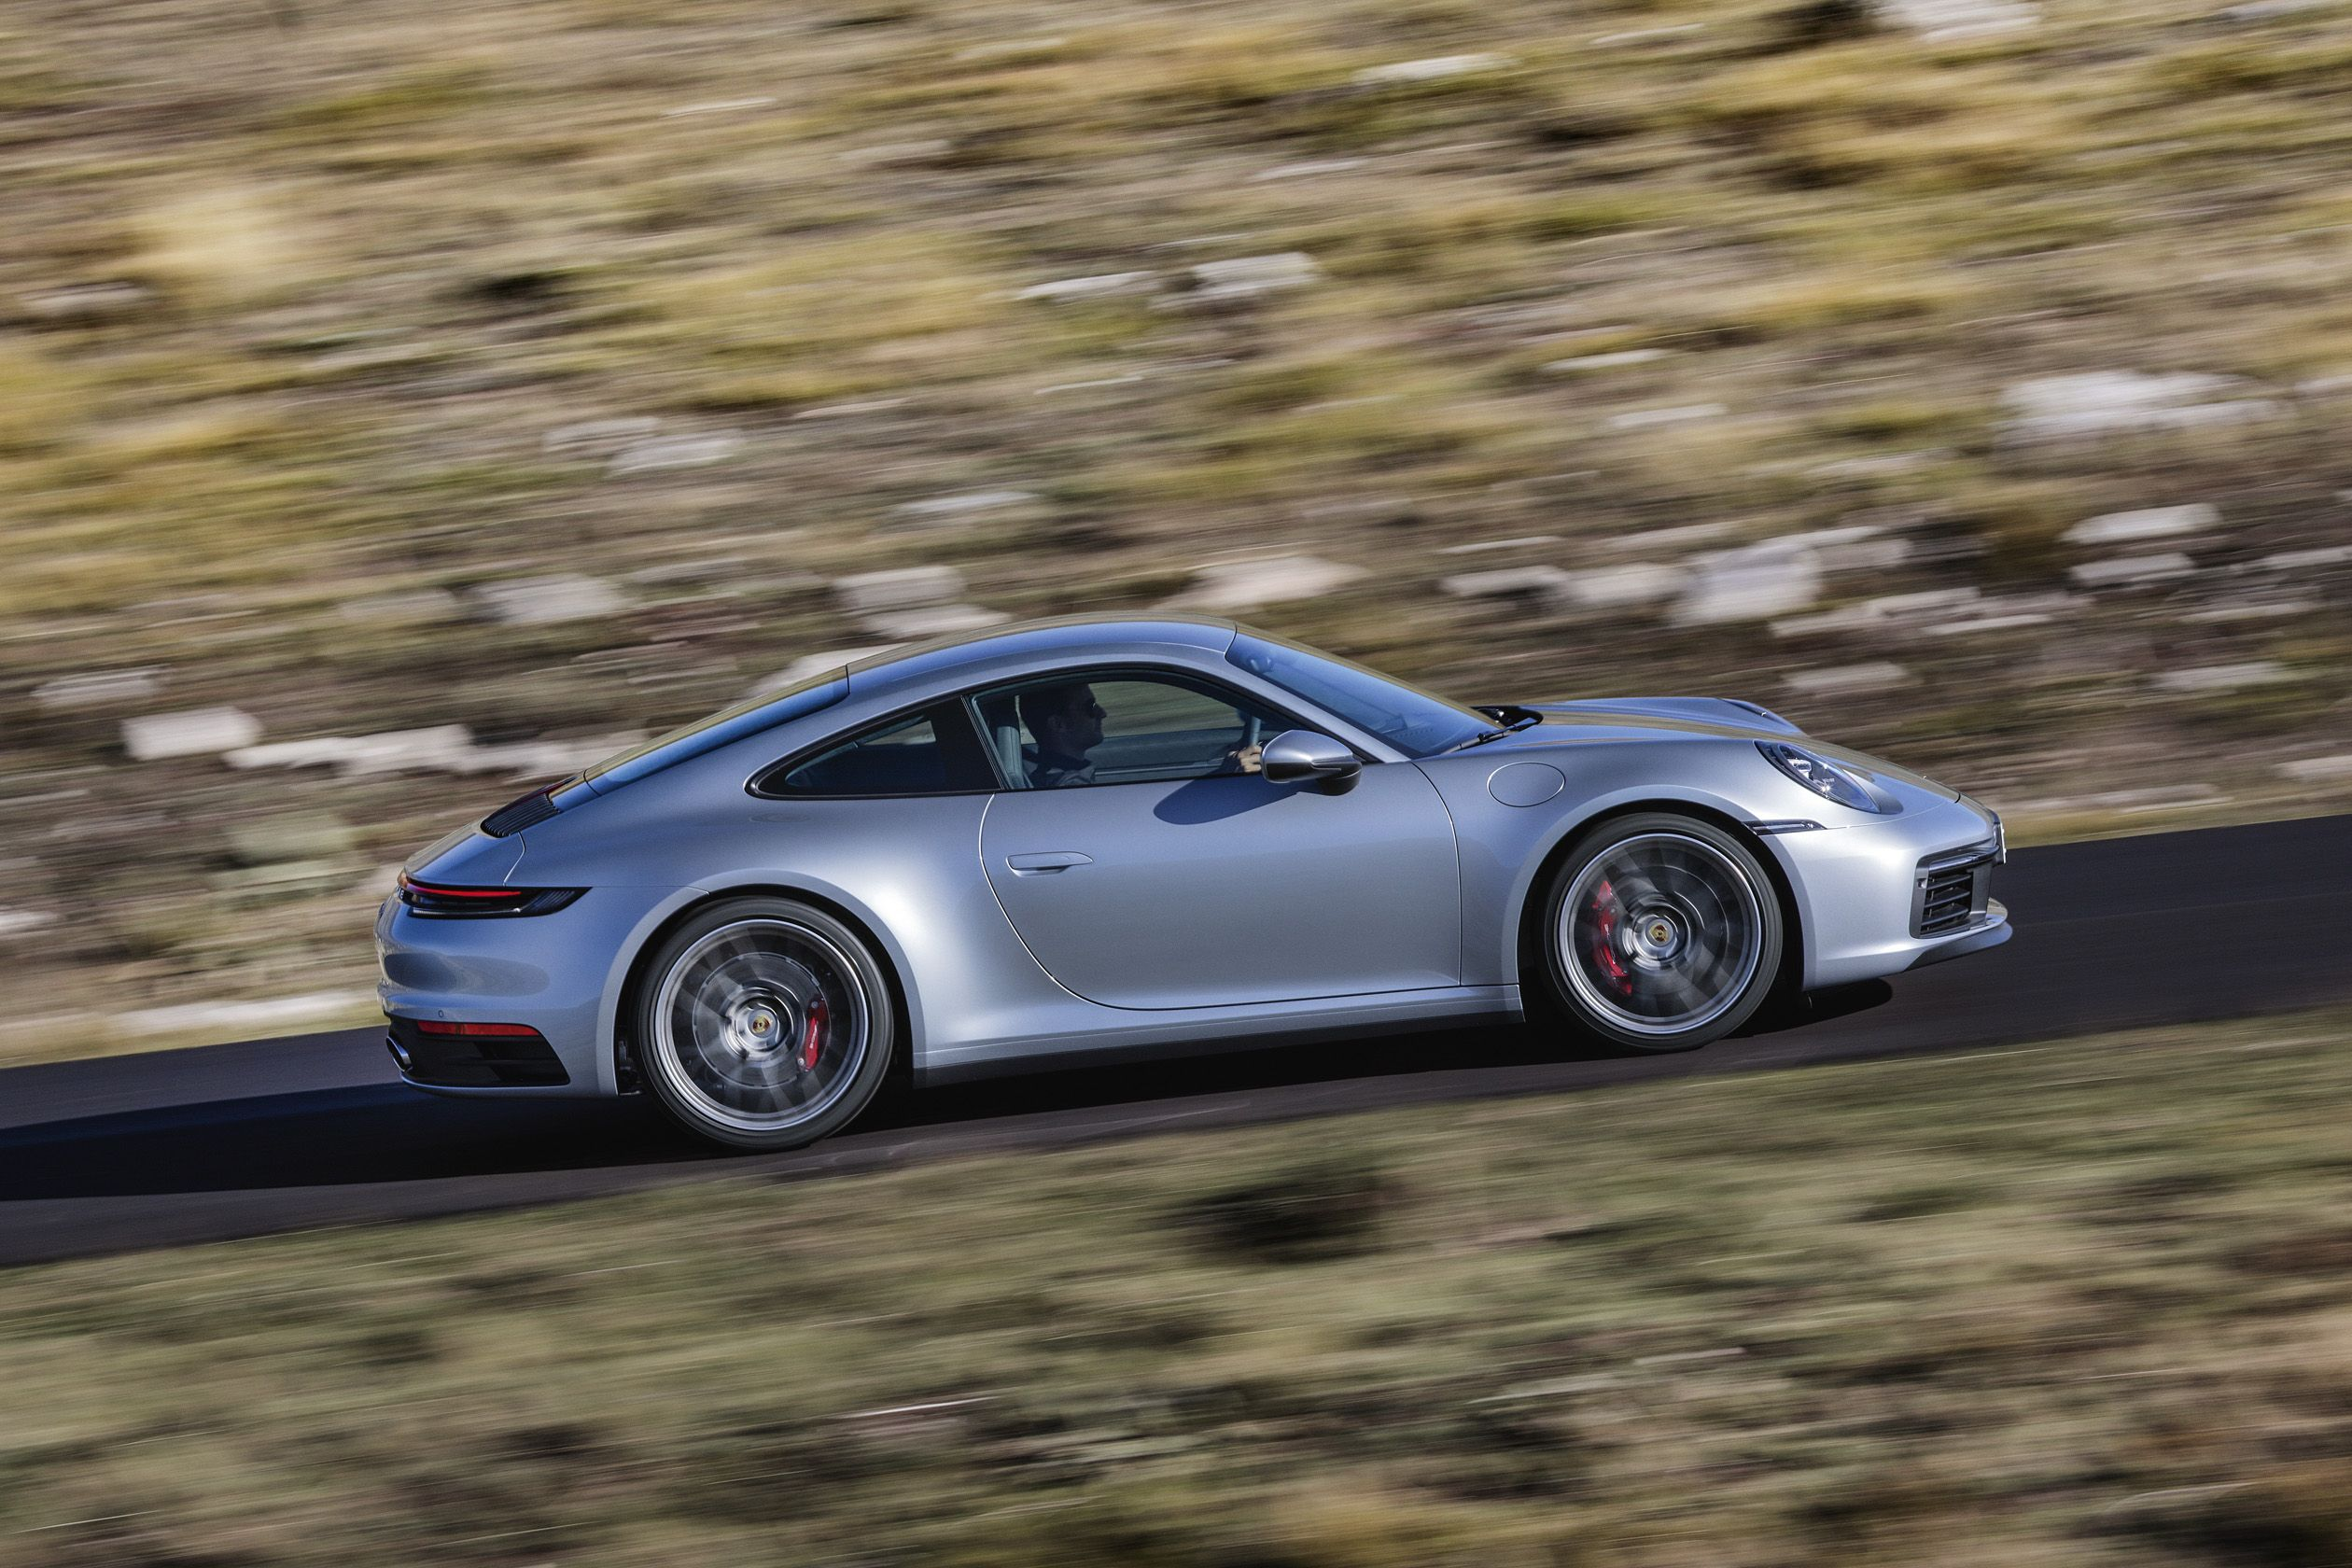 Why Does Everyone Love the Porsche 911?